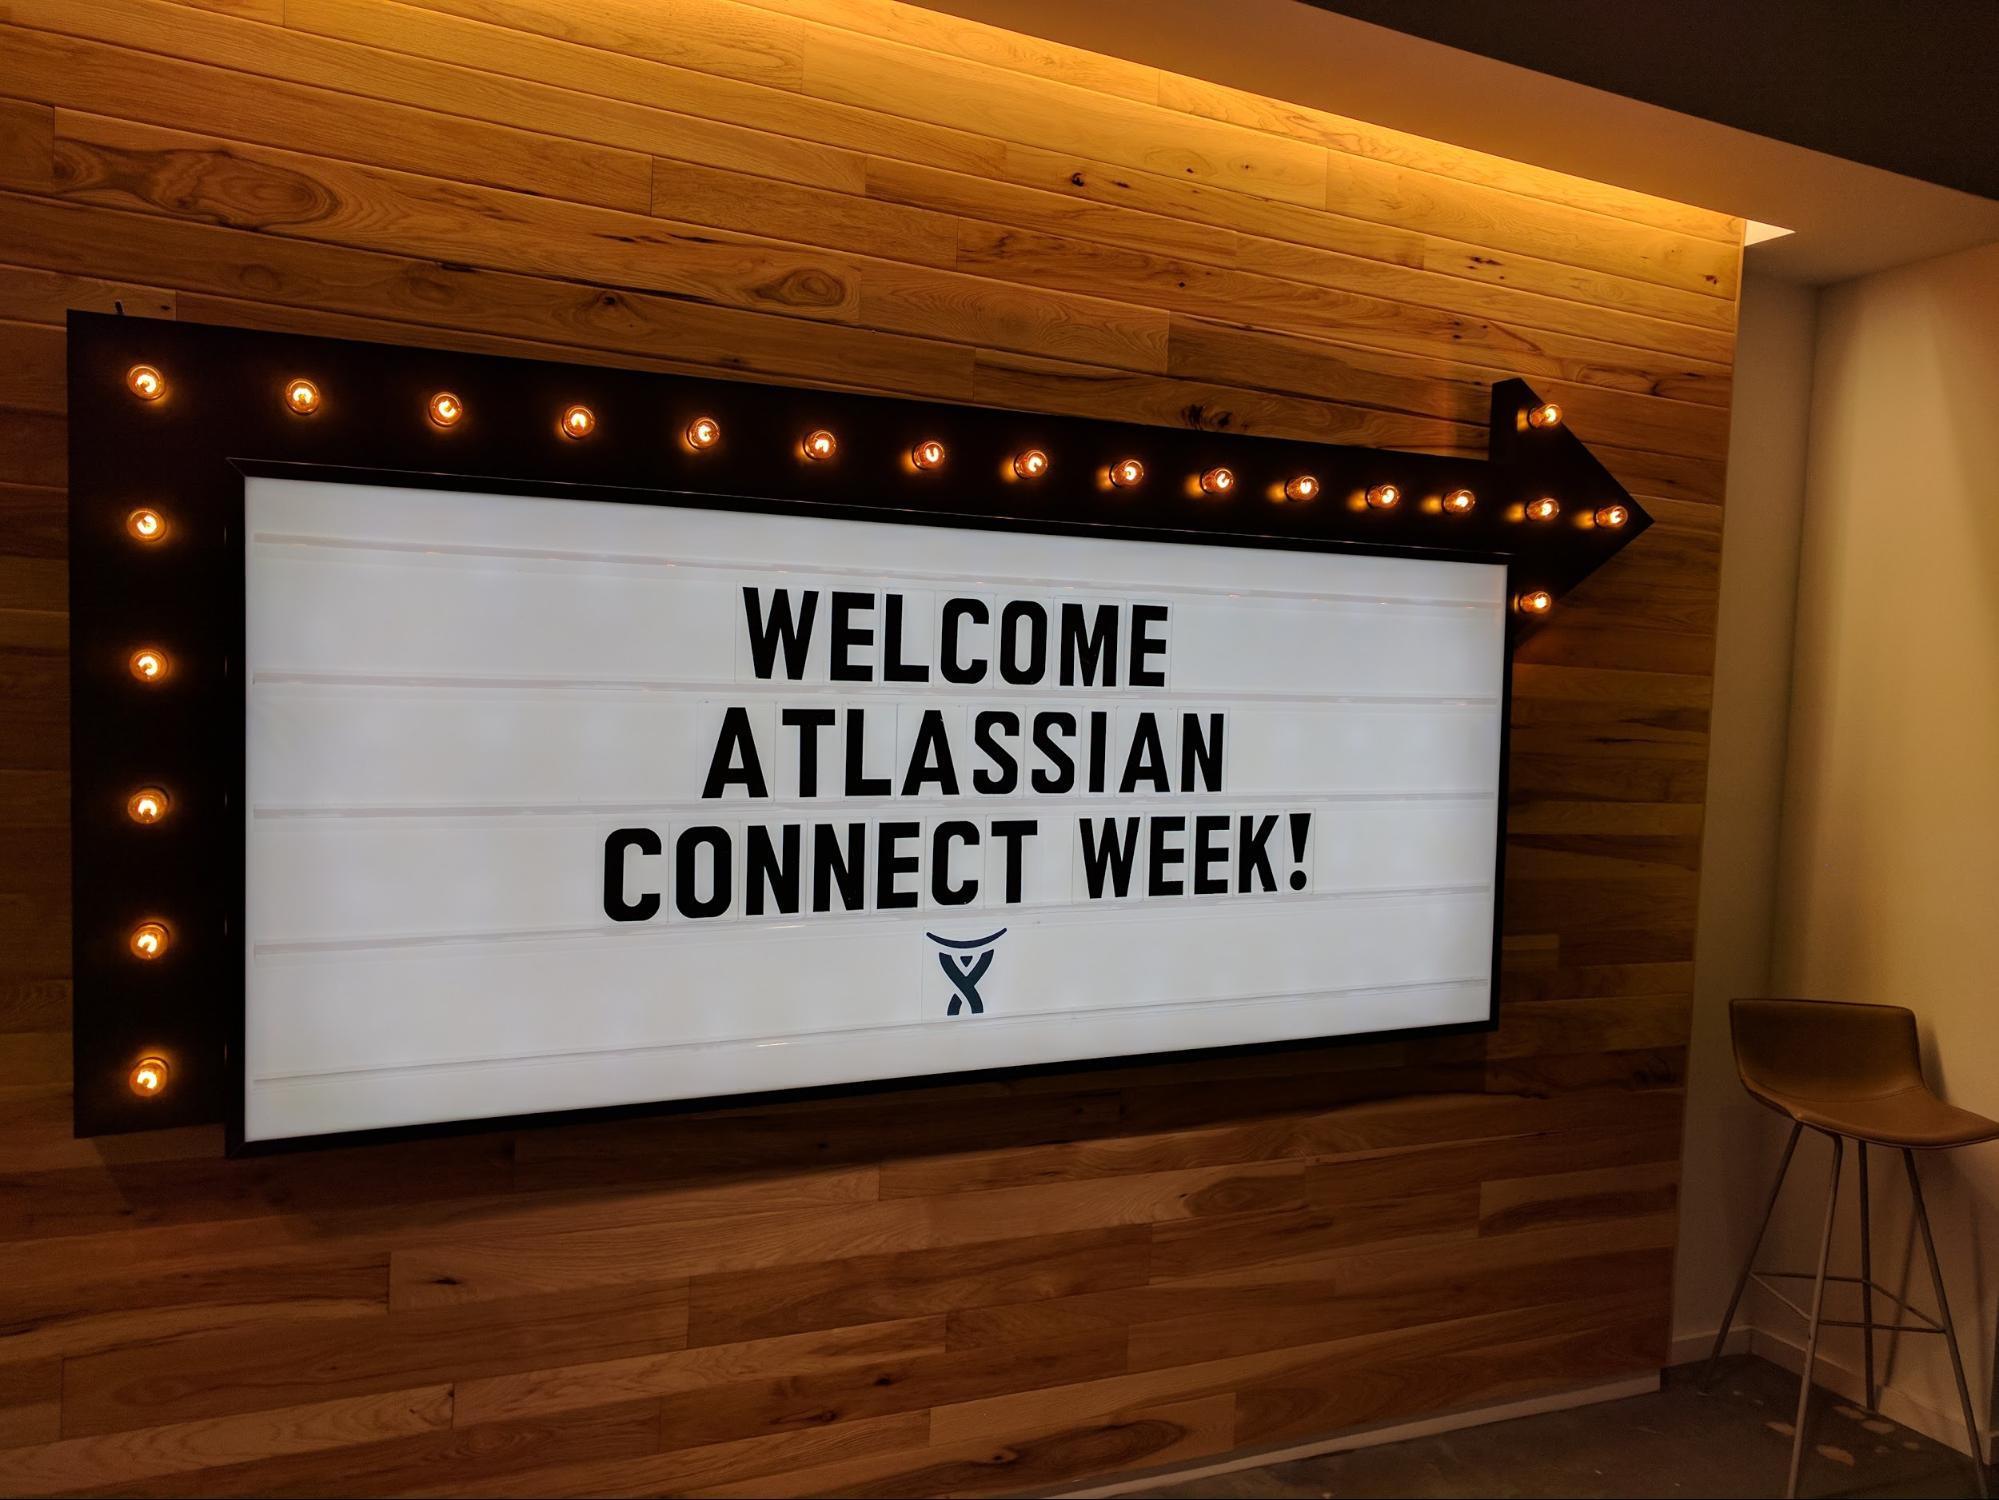 welcome to Atlassian Connect Week sign